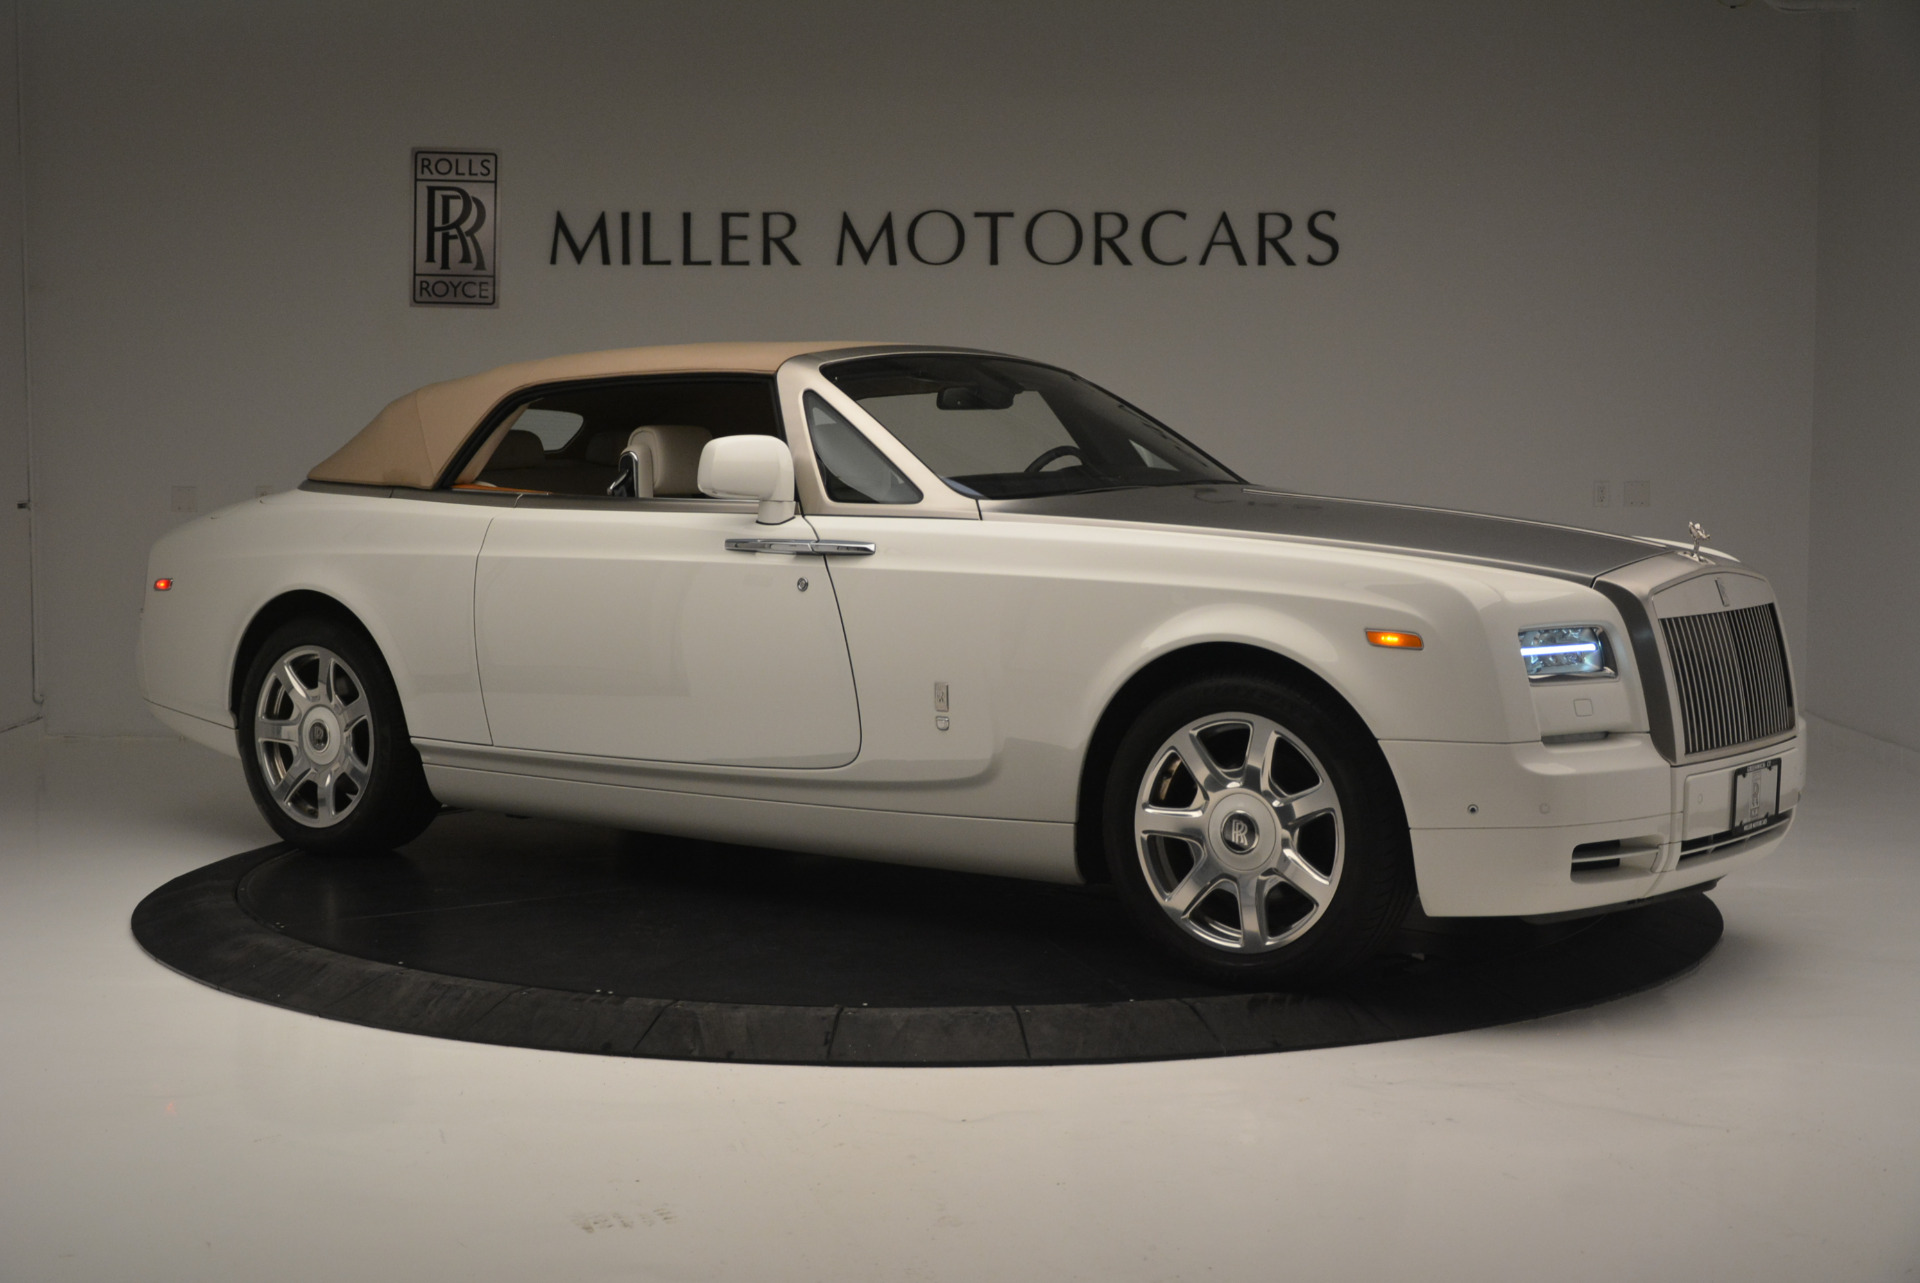 Used 2013 Rolls-Royce Phantom Drophead Coupe  For Sale In Greenwich, CT 2444_p15